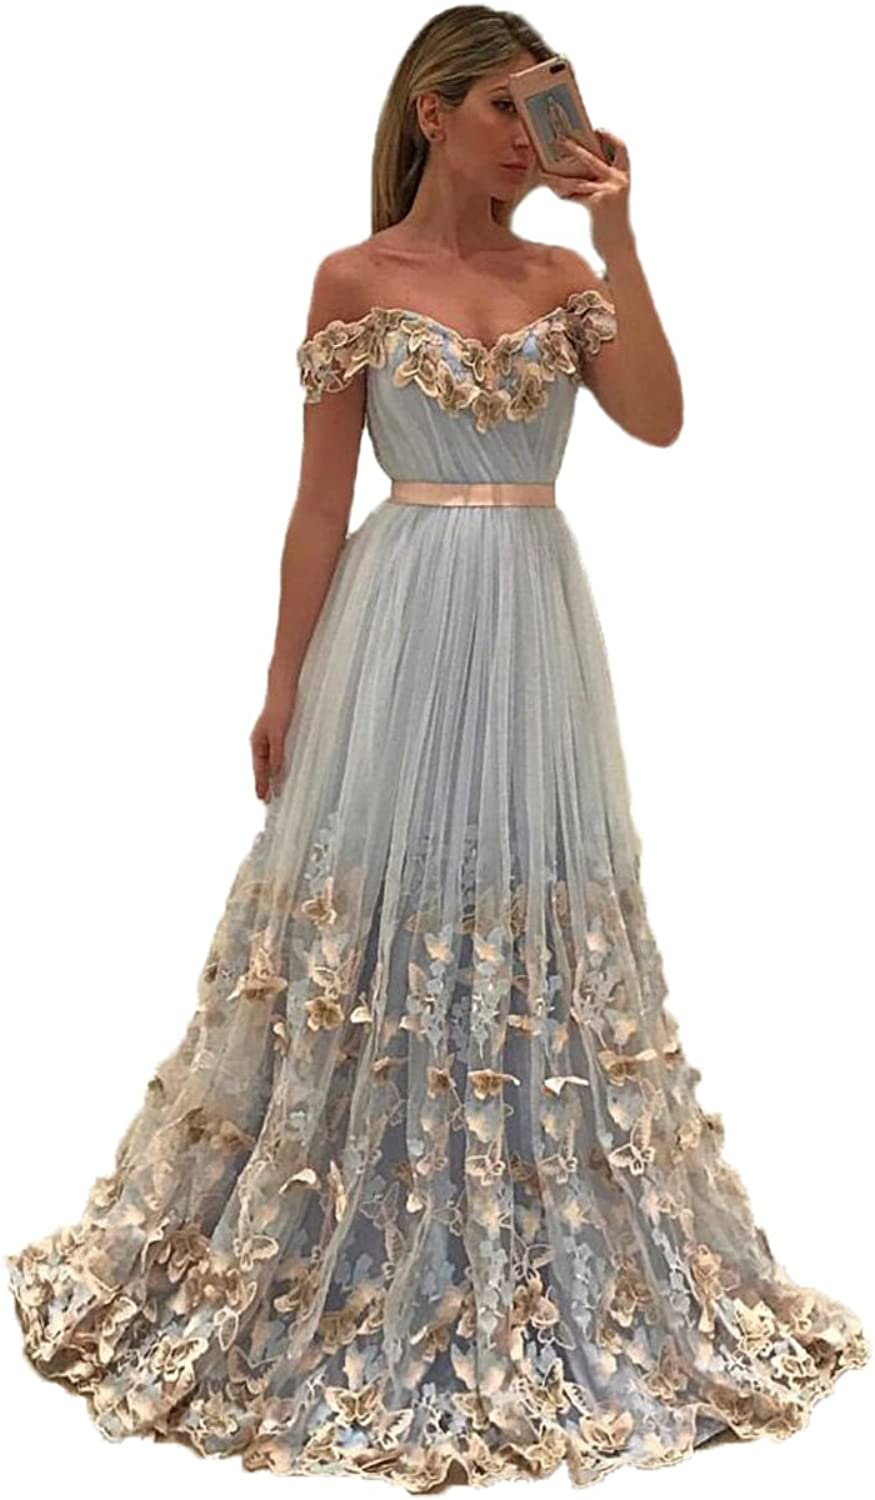 Uryouthstyle 2017 Off Shoulder Long Aline Prom Dresses with Butterfly